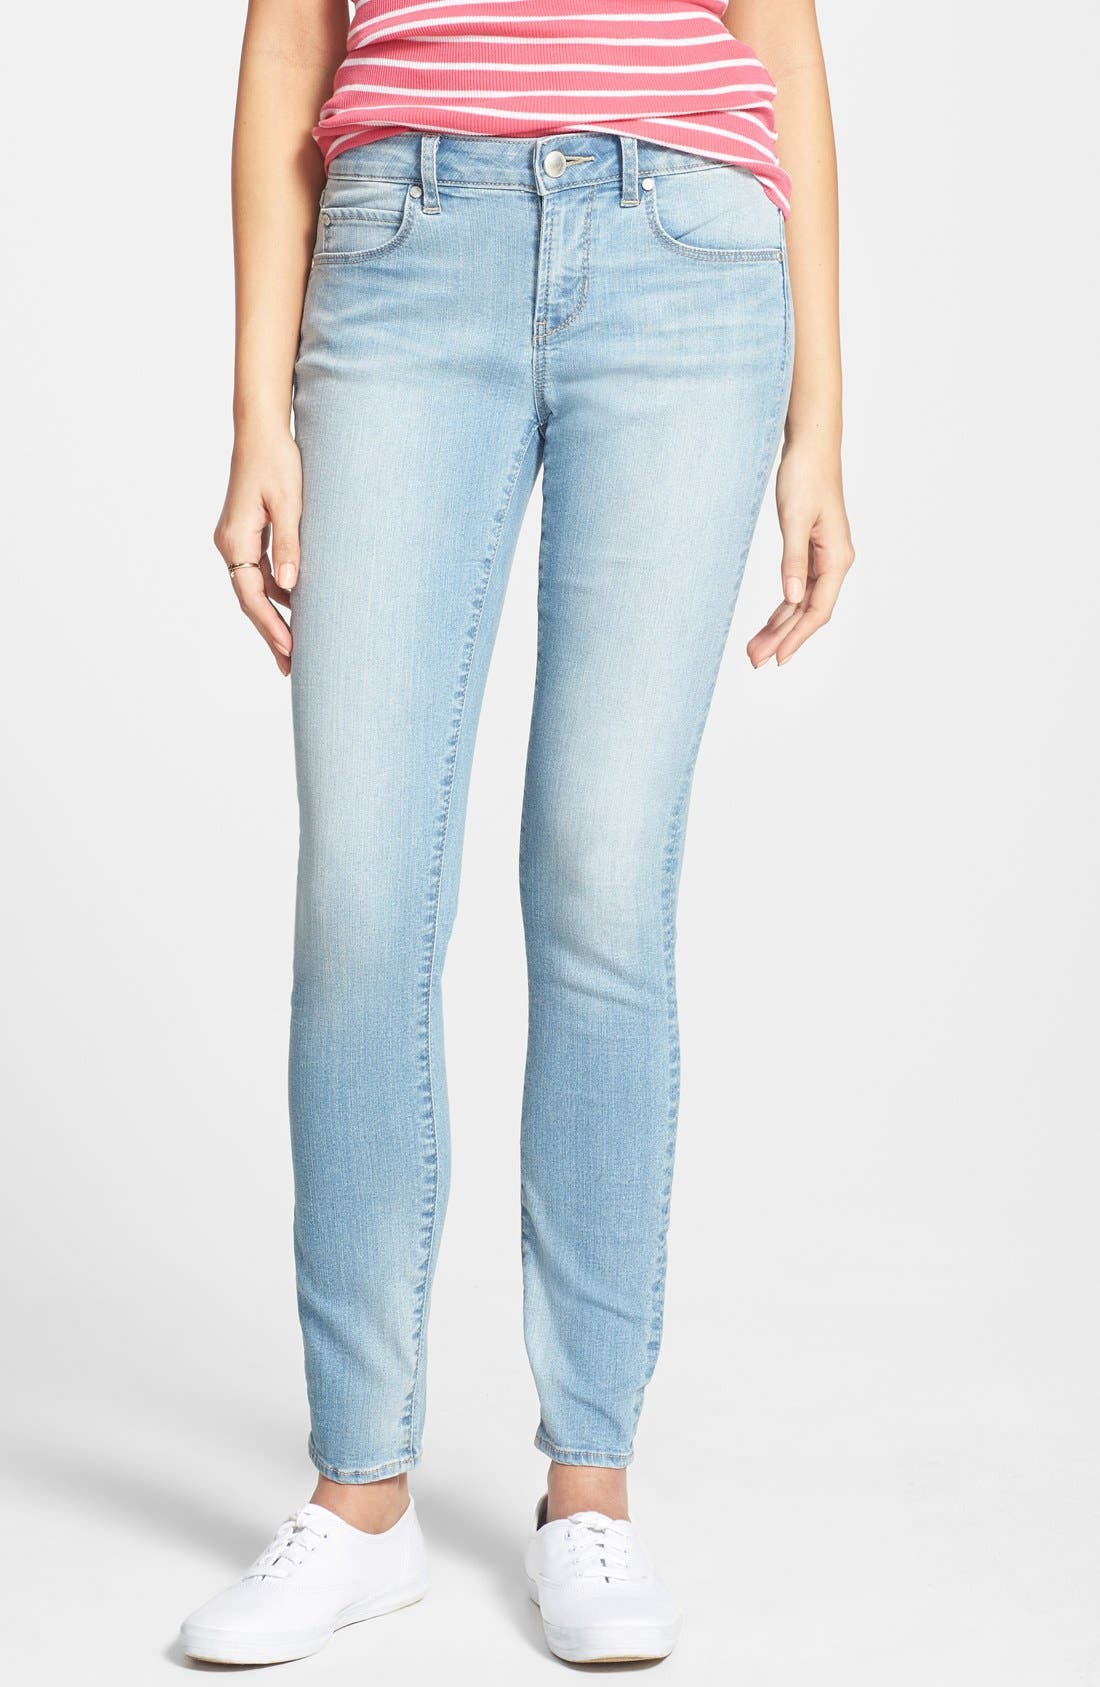 'Sarah' Skinny Jeans,                         Main,                         color, Light Wash